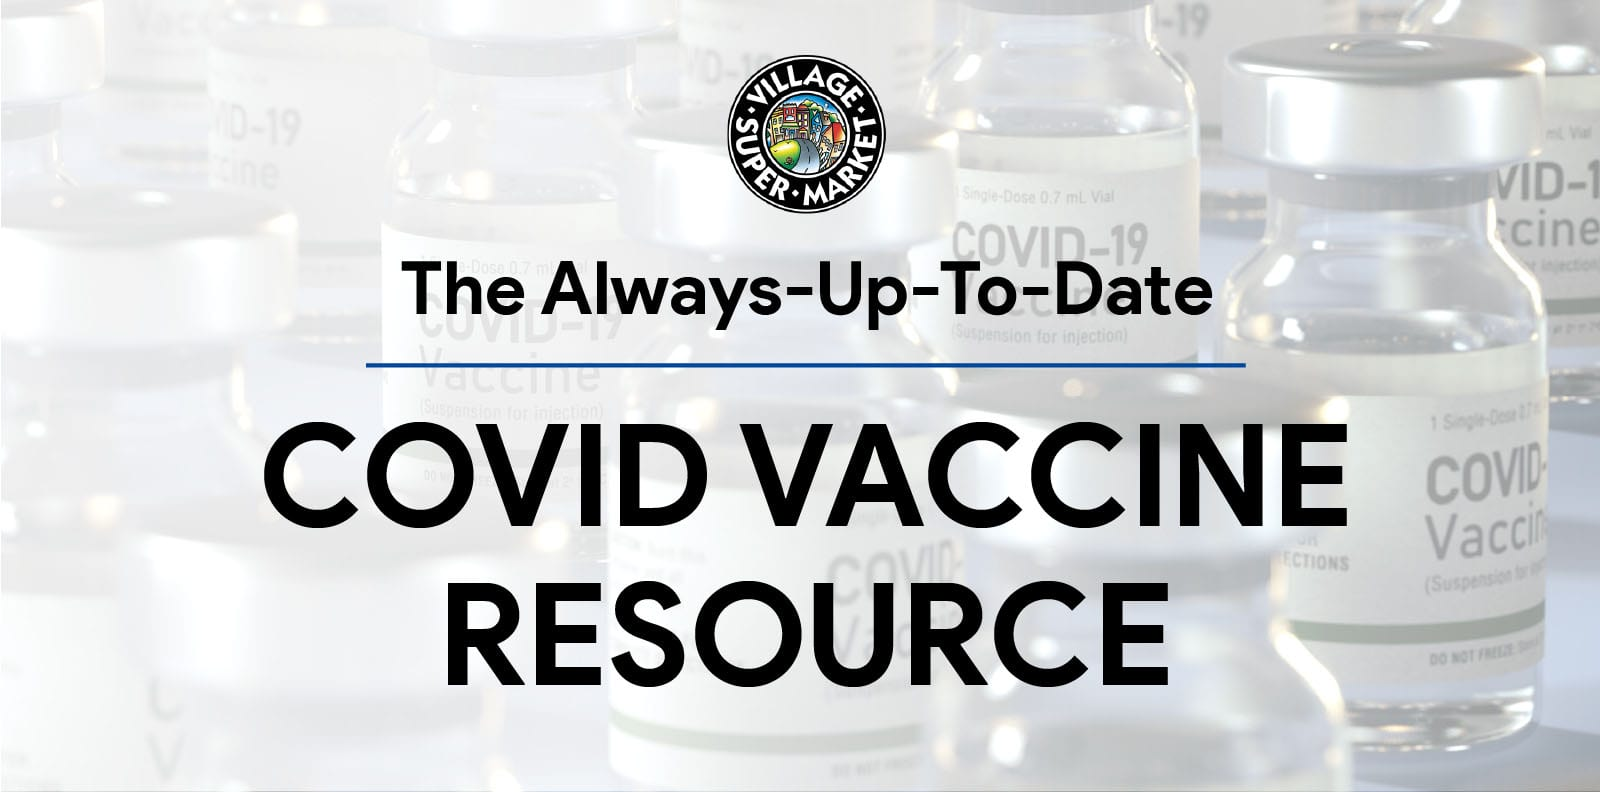 The Always-Up-To-Date COVID Vaccine Resource